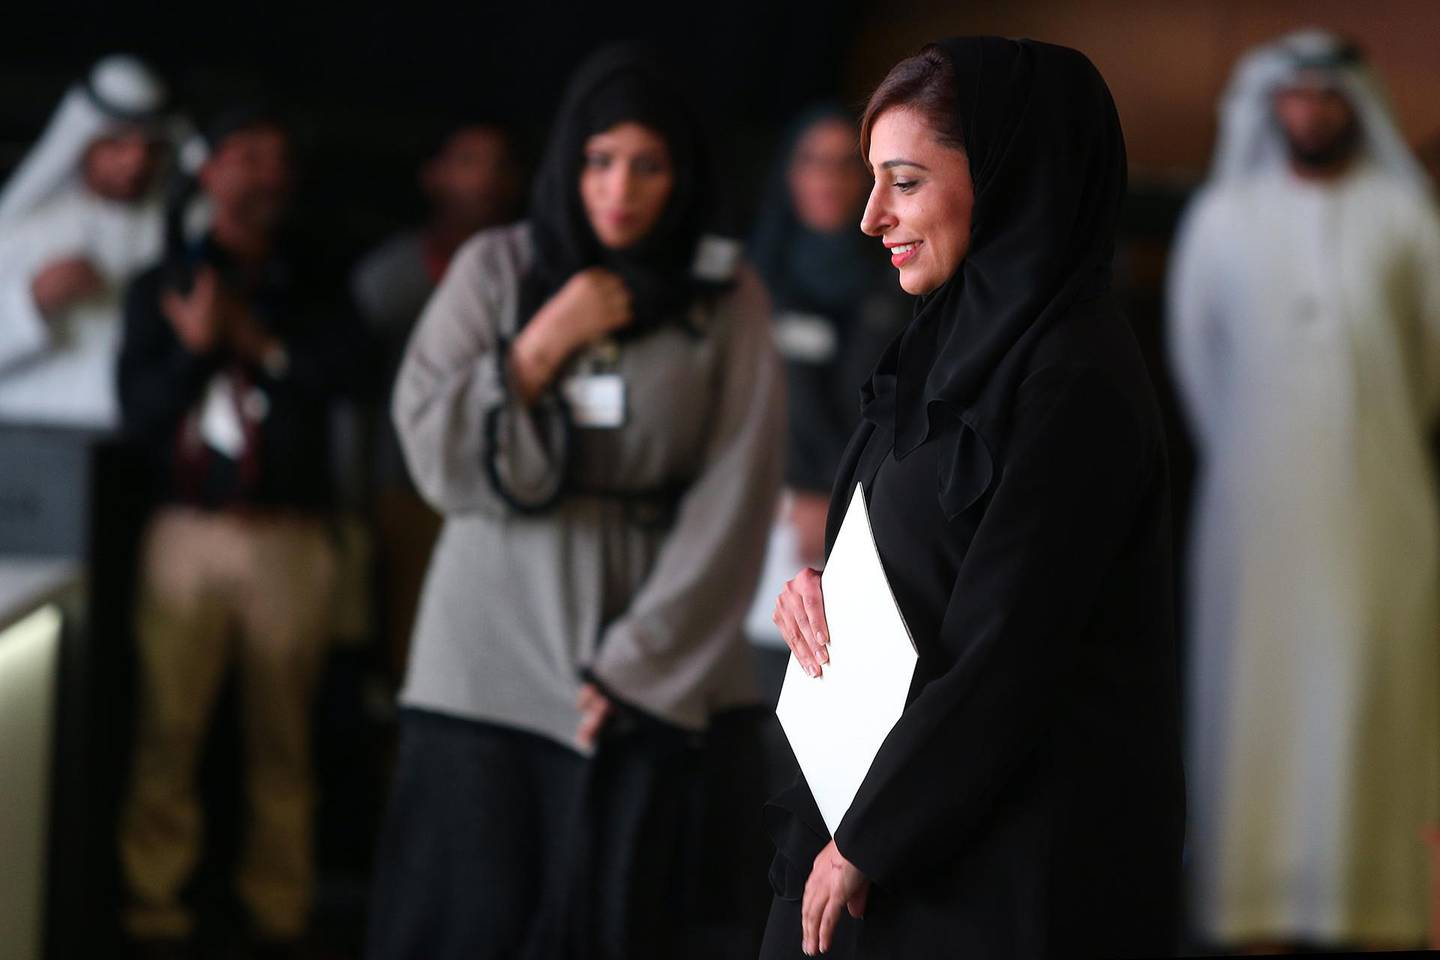 DUBAI, UNITED ARAB EMIRATES - - -  March 1, 2016 --- HE Sheikha Bodour Al Qasimi, Founder and CEO of Kalimat Group, gave one of the keynote speeches on opening day of the Global Educational Supplies & Solutions (GESS) conference in Dubai on Tuesday, March 1, 2016.    ( DELORES JOHNSON / The National ) ID: 44836 Reporter: Nadeem Hanif Section: NA *** Local Caption ***  DJ-010316-NA-Educationa Technology-44836-018.jpg